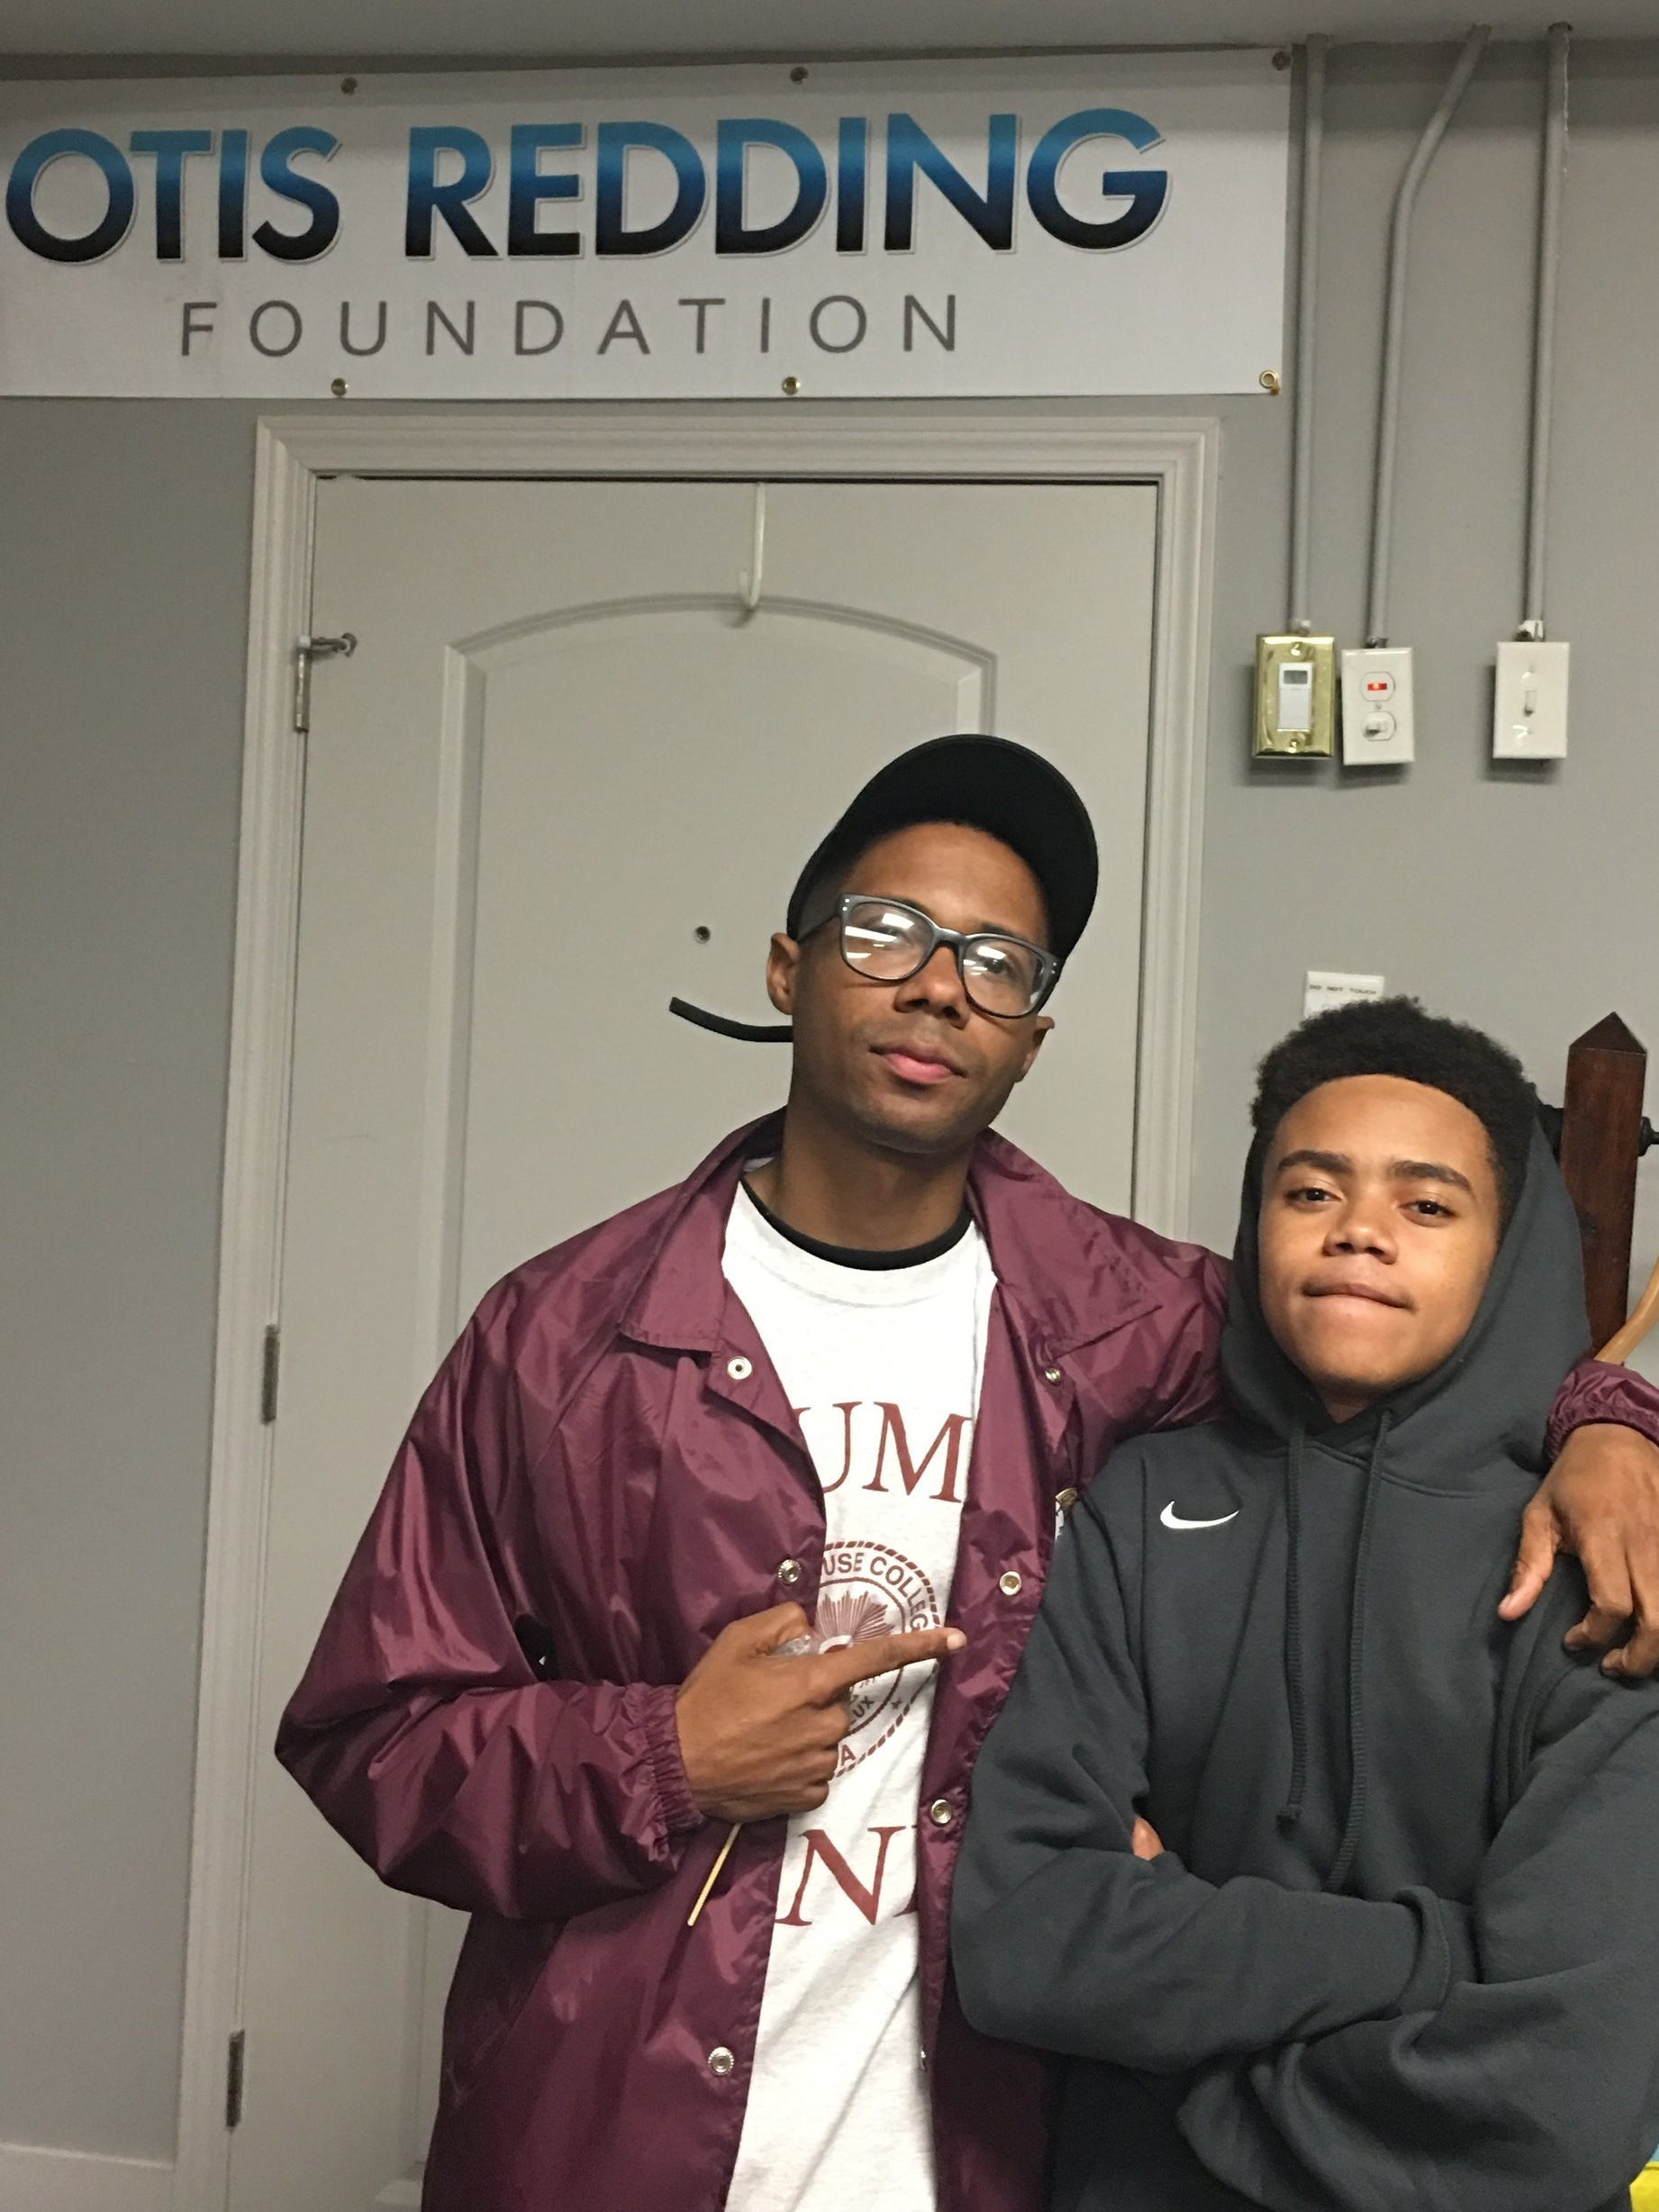 Vinson Muhammad and Dakarai Williams at the Otis Redding Center for Creative Arts, where the song was recorded.